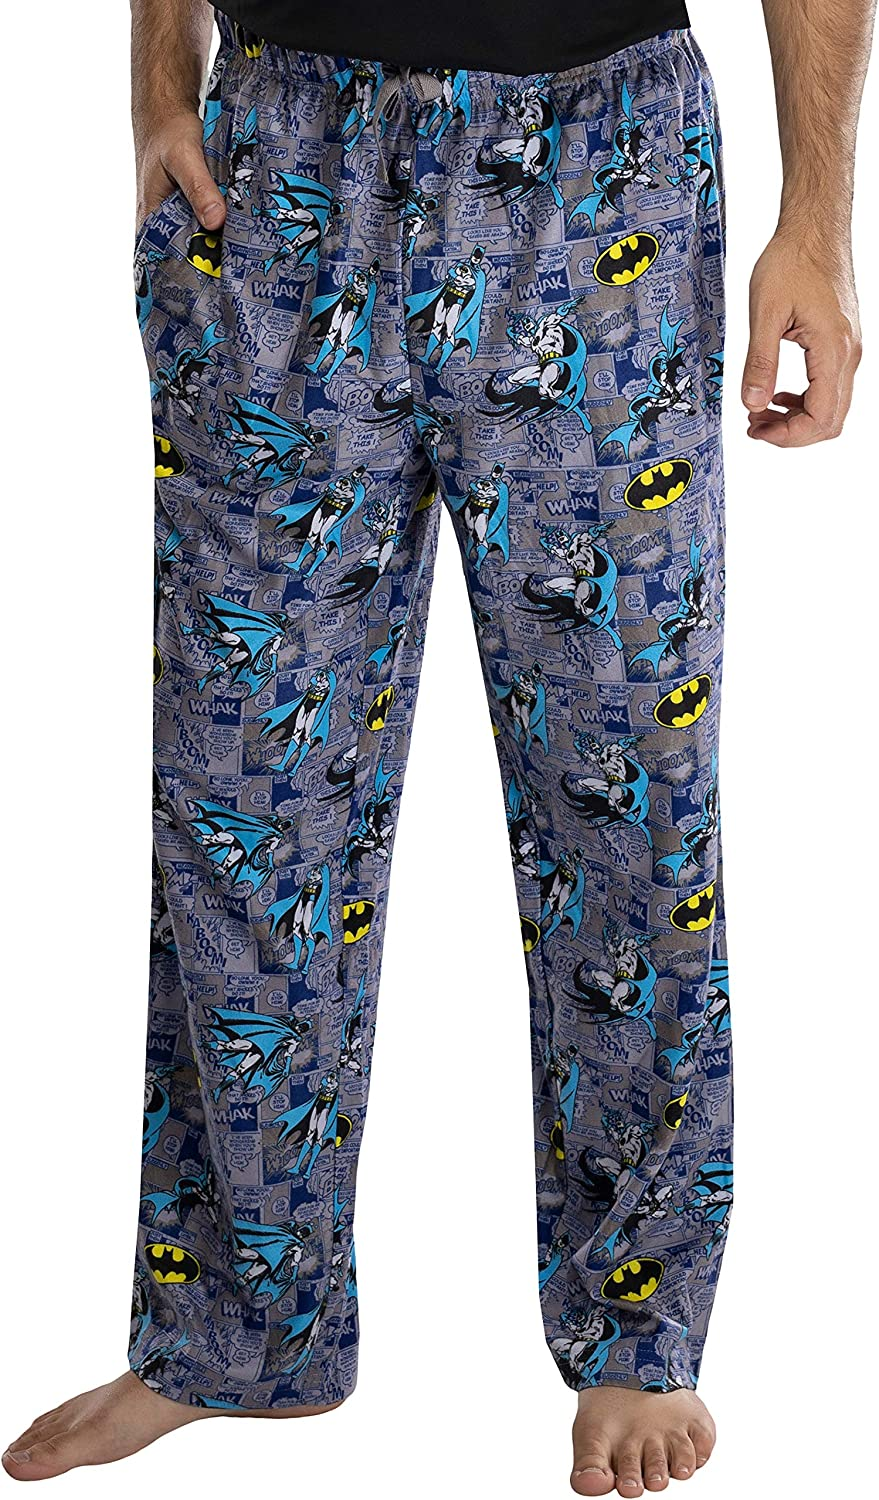 DC Comics Adult Classic Batman Comic Allover Print Loungewear Pajama Pants for Men